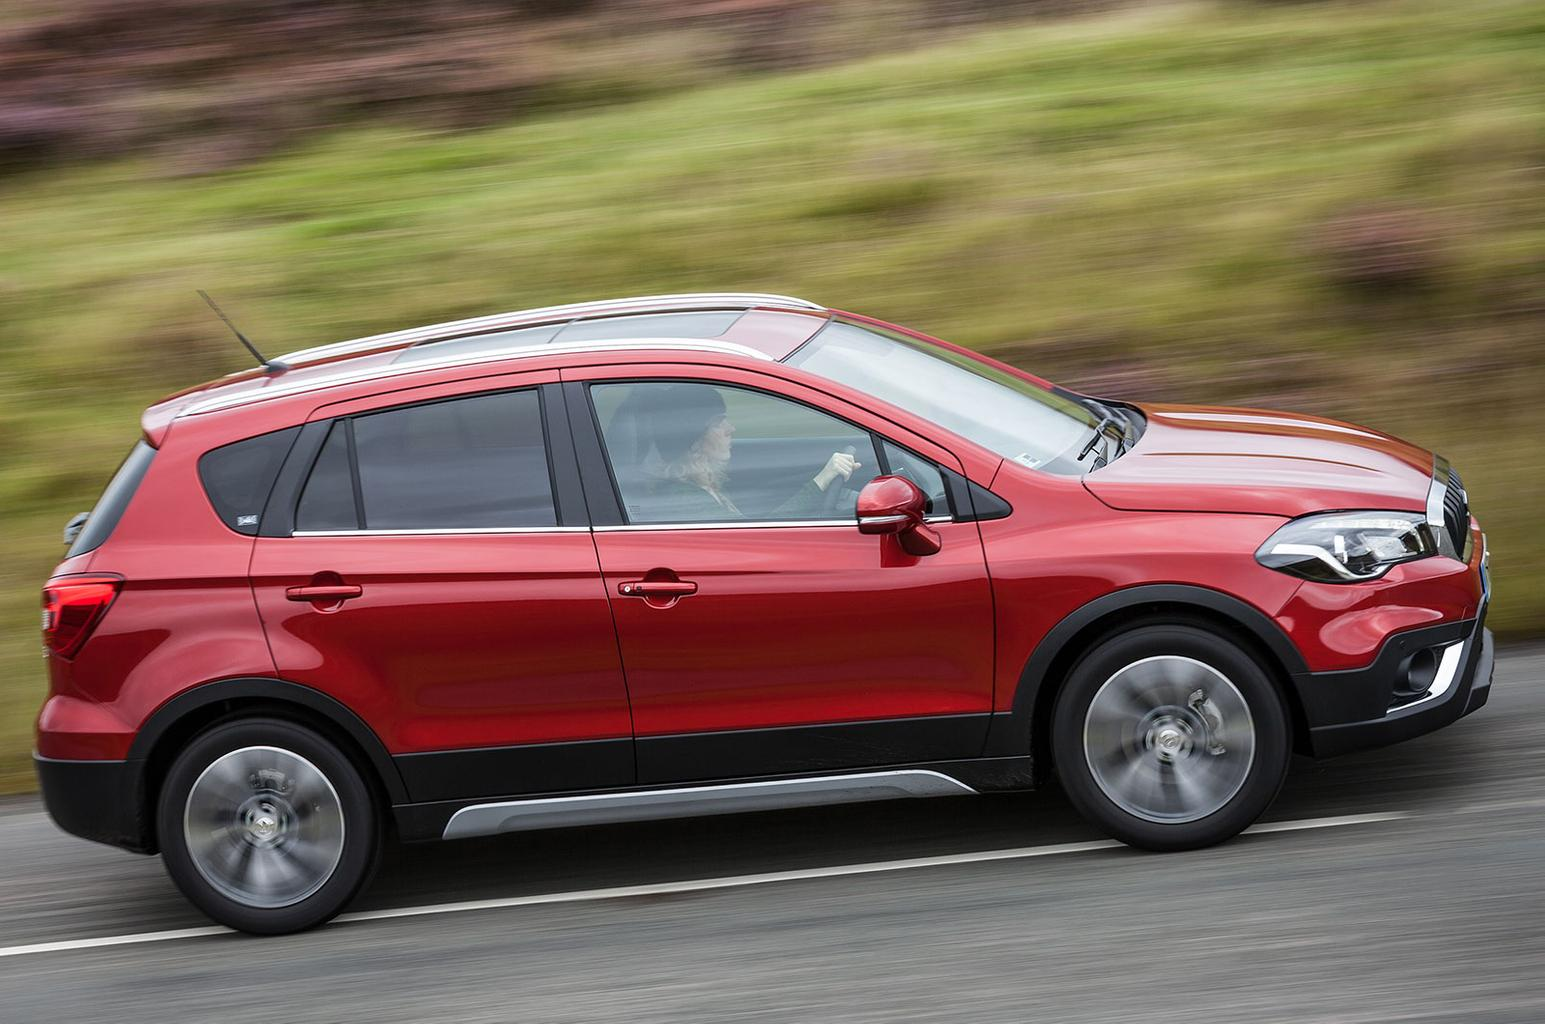 Facelifted Suzuki SX4 S-Cross revealed